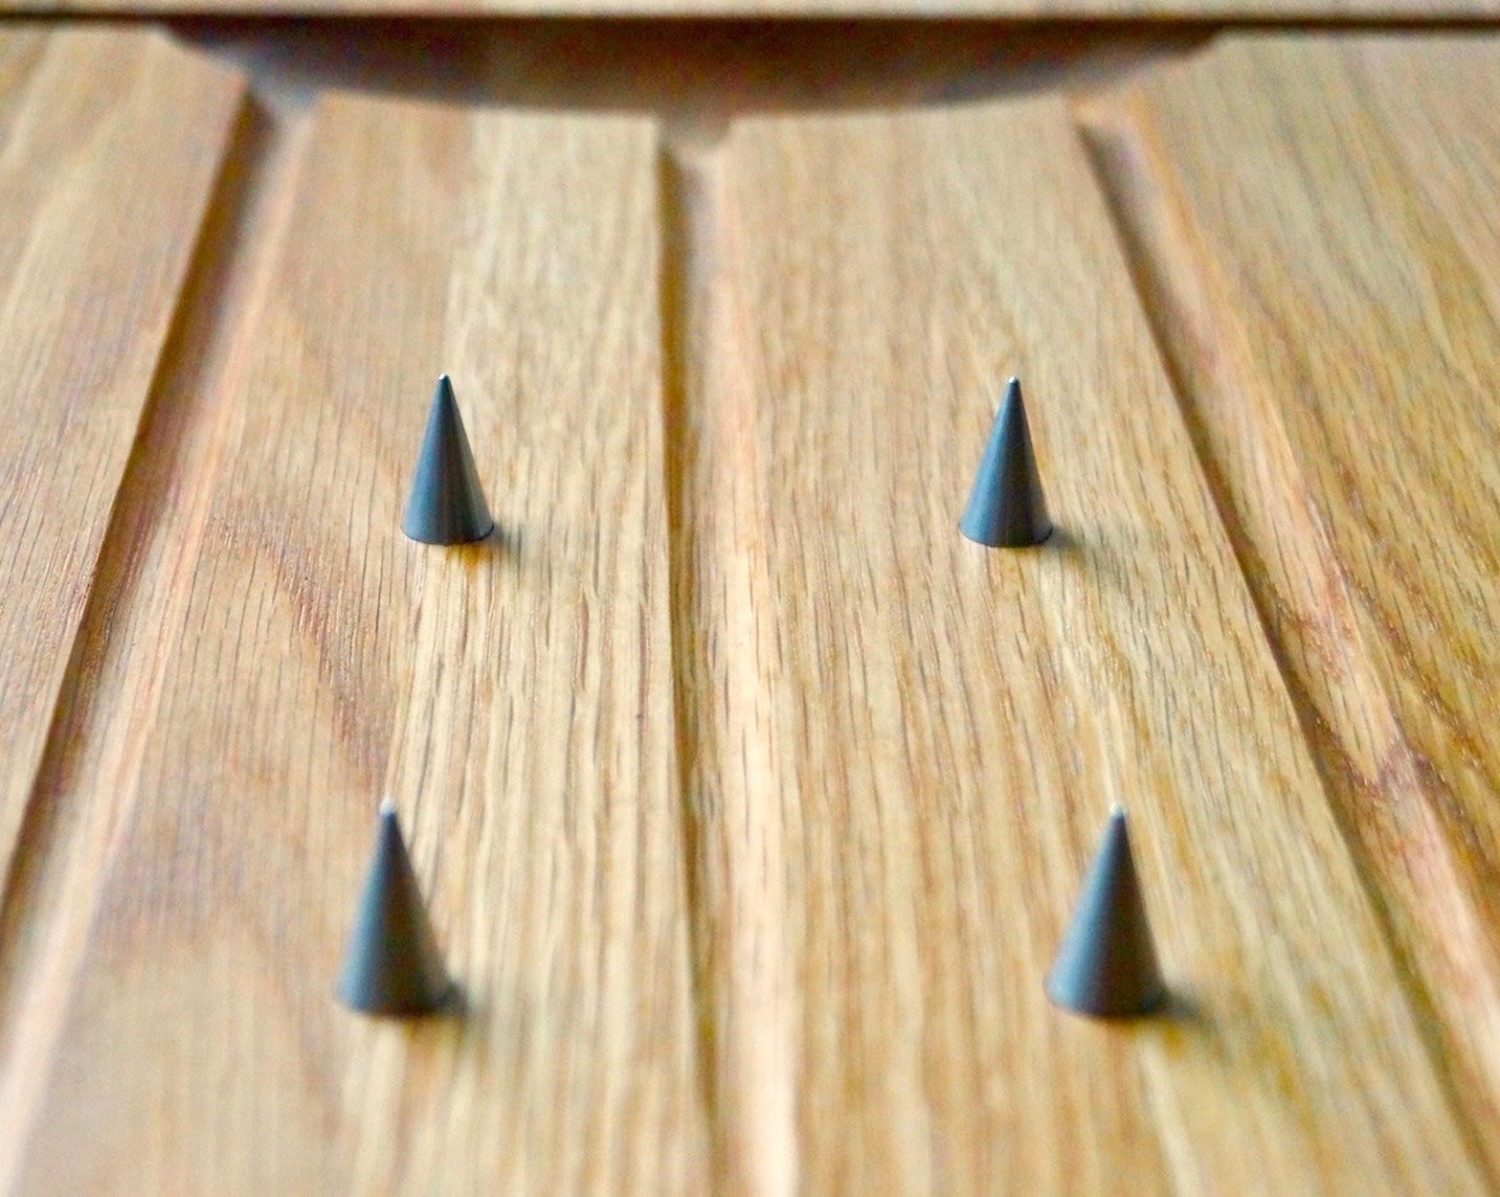 engraved-oak-carving-board-with-spikes